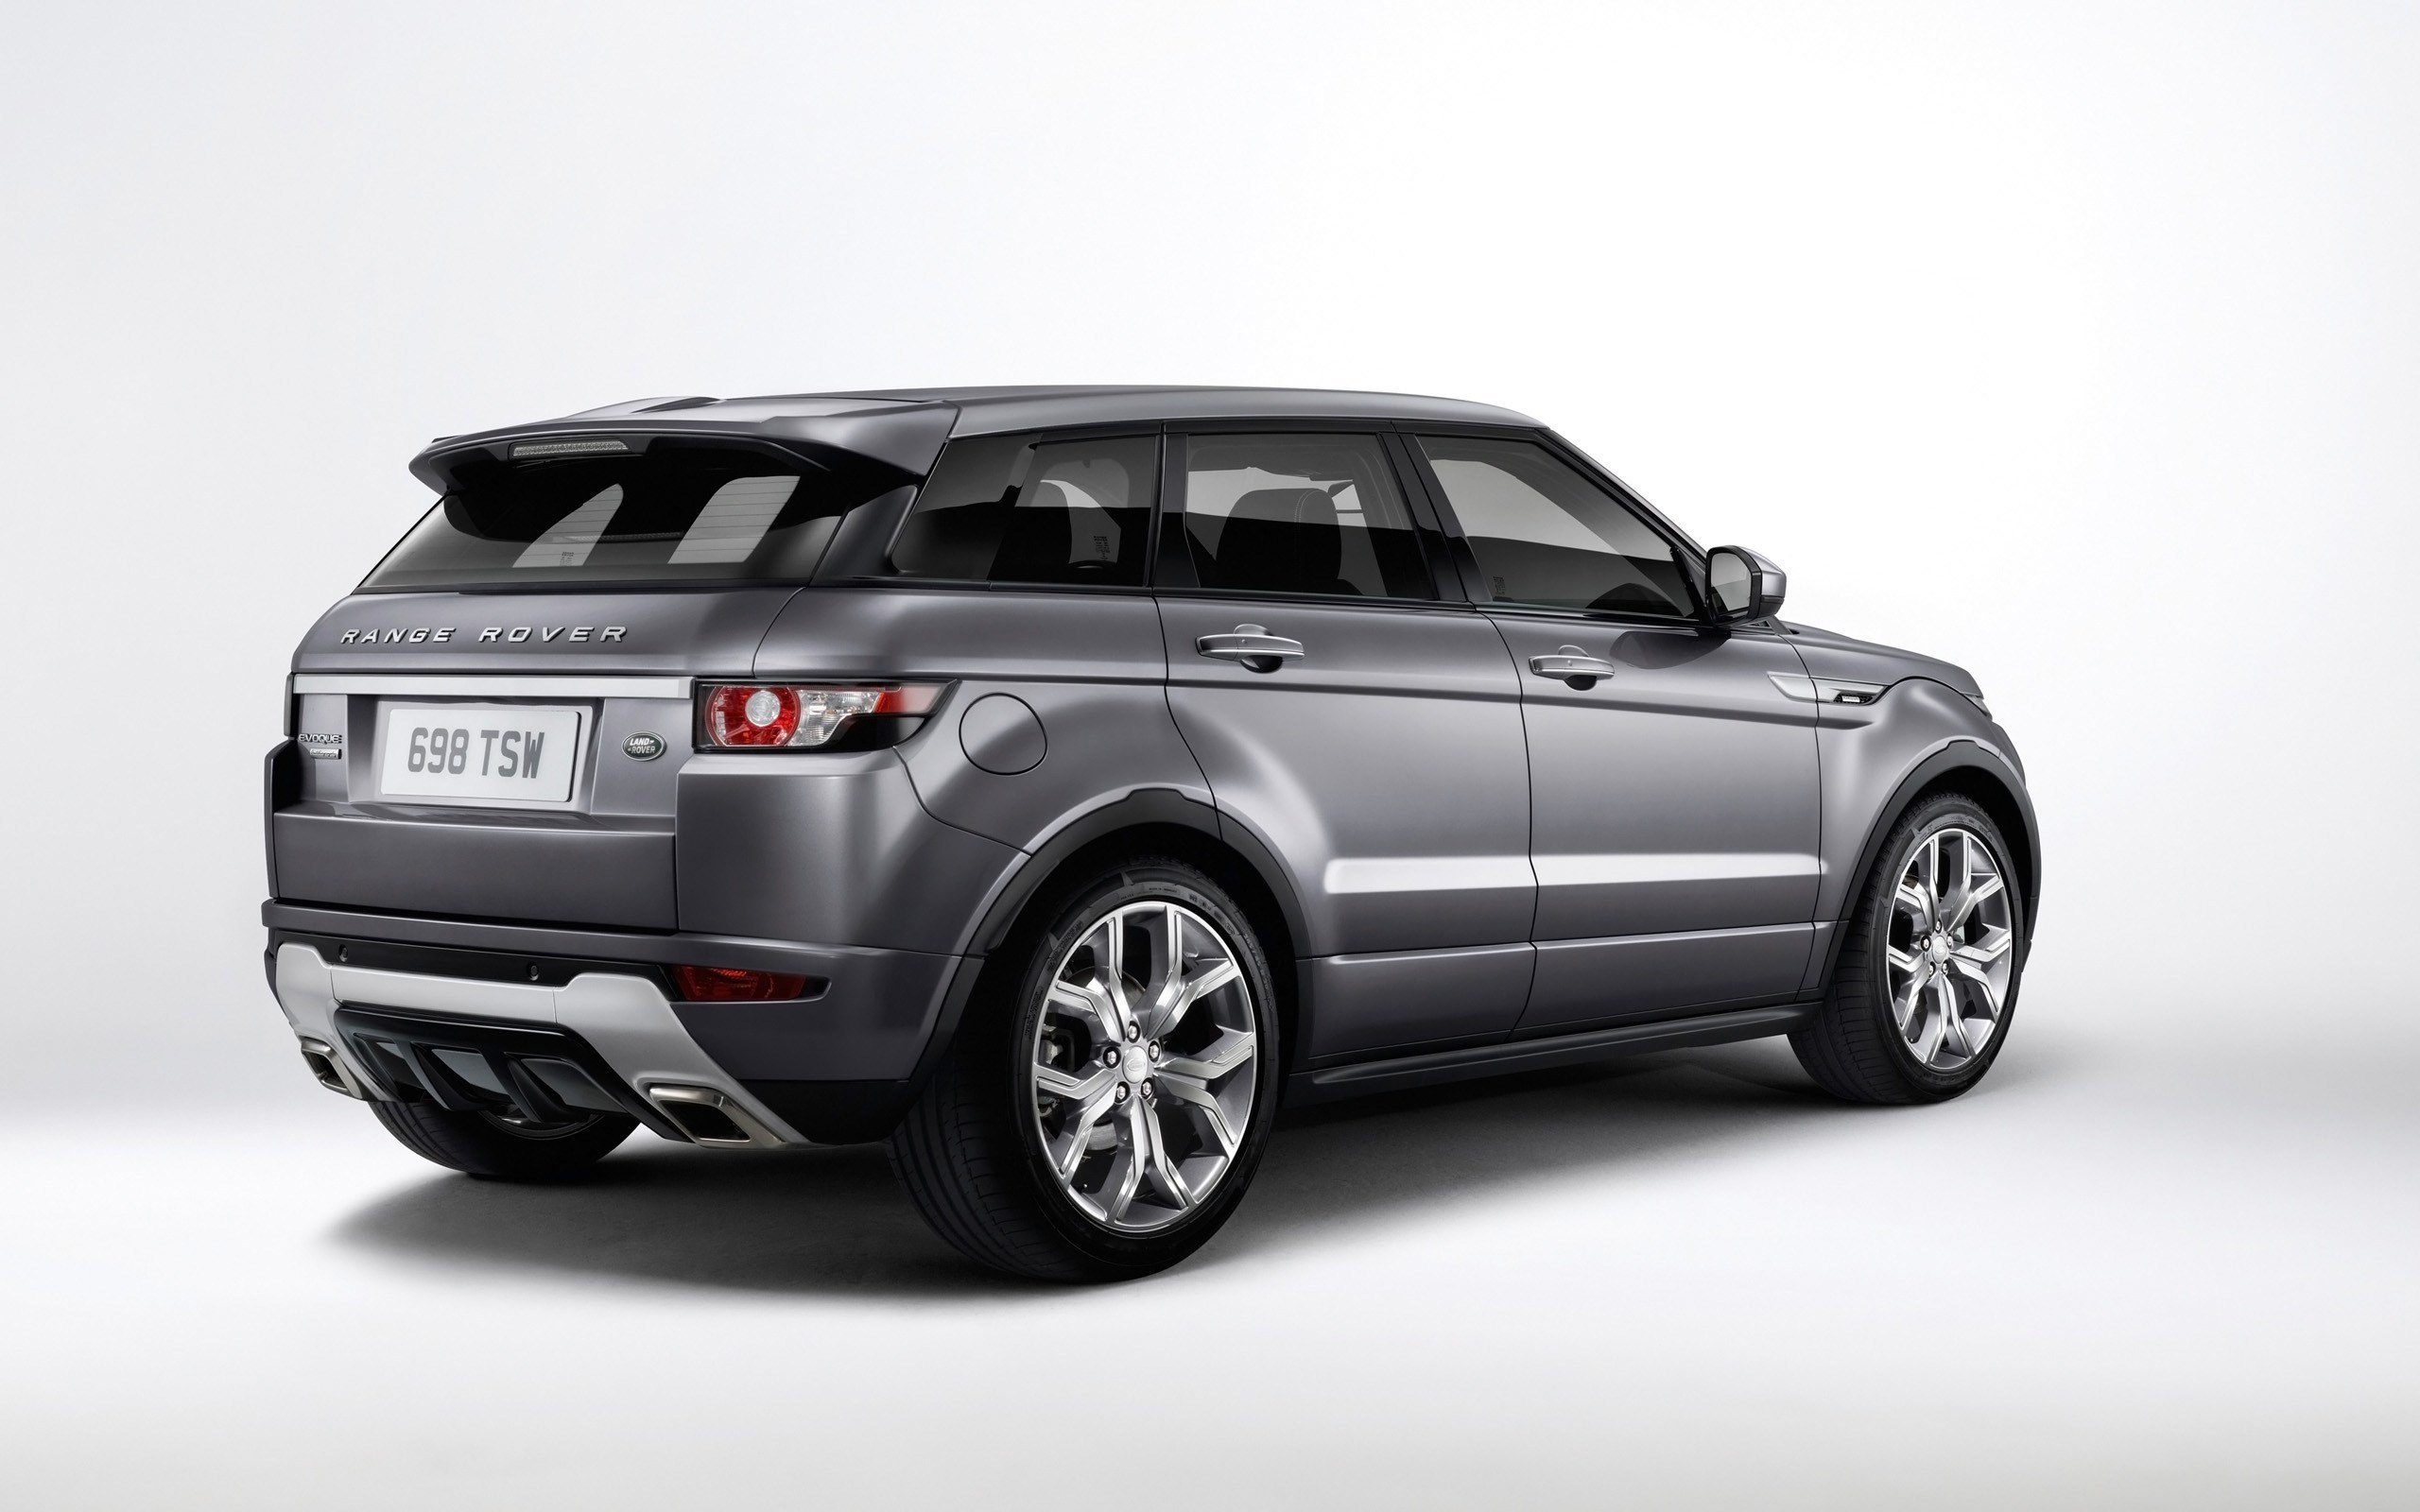 Latest Range Rover Evoque Hd Wallpapers Free Download